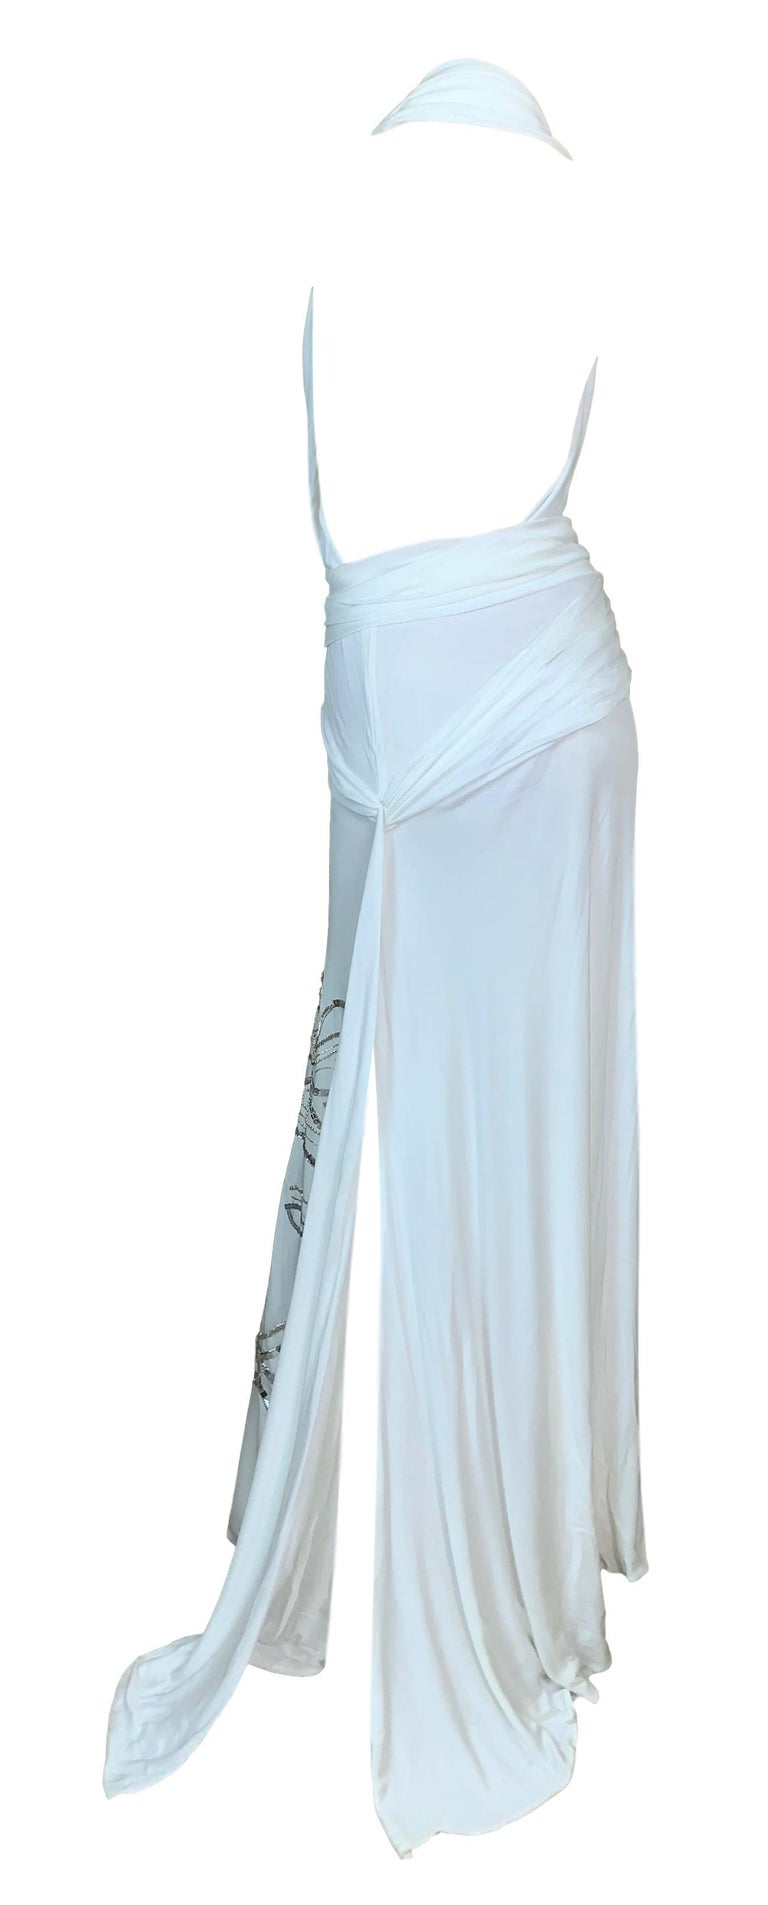 S/S 2000 Gianni Versace Runway White Plunging High Slits Beaded Gold Medusa Gown In Good Condition For Sale In Yukon, OK